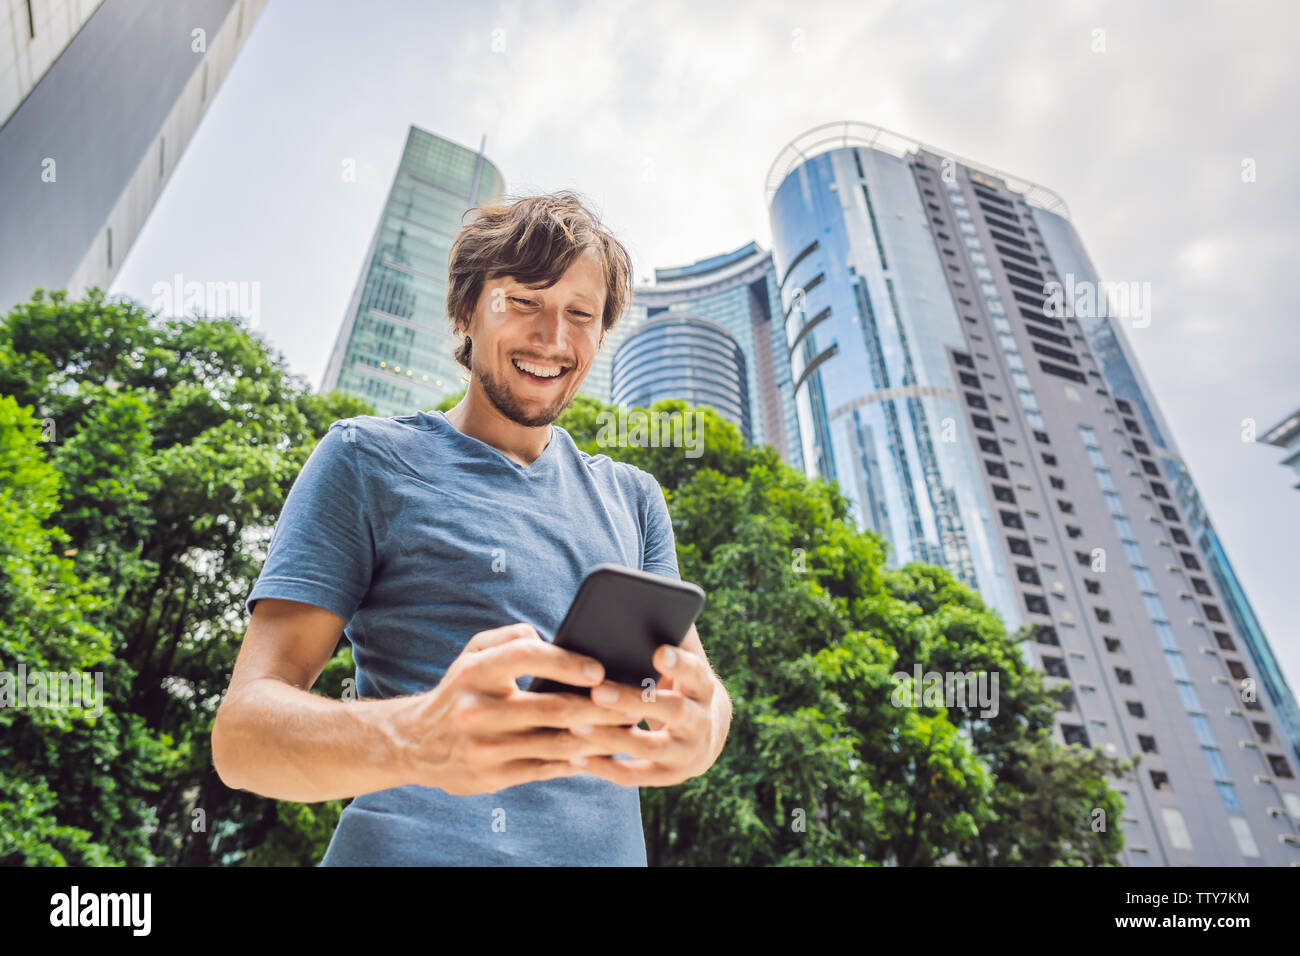 Man Tourist using navigation app on the mobile phone. Navigation map on a smartphone in a big city - Stock Image